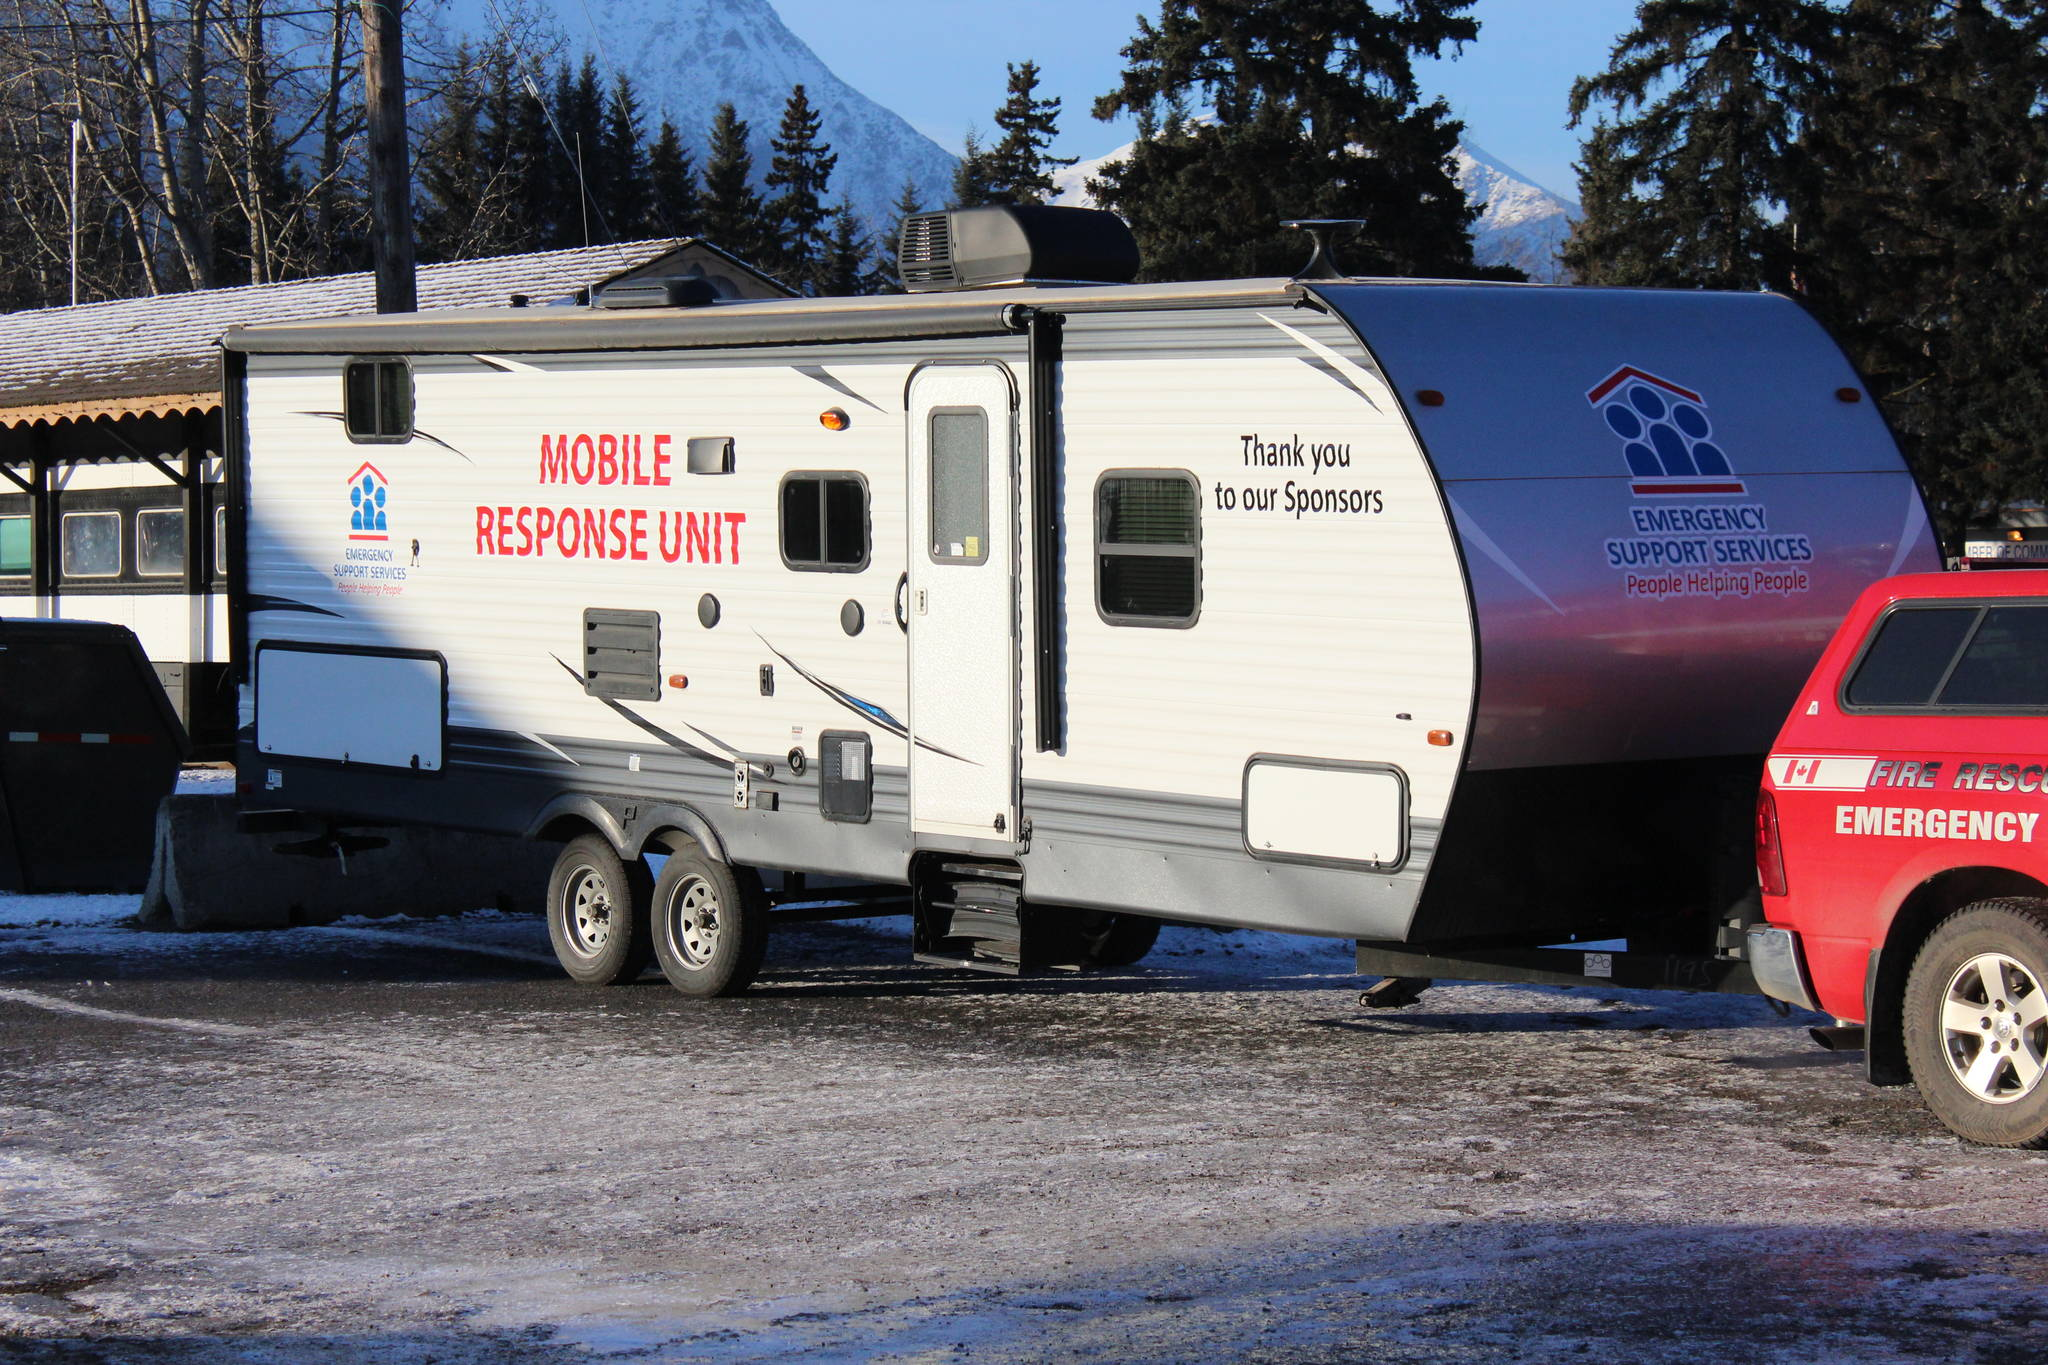 The Bulkley Valley Emergency Support Services new Mobile Response Unit made its inaugural appearance as part of the Emergency Services food drive for the Salvation Army Nov. 30. (Thom Barker photo)